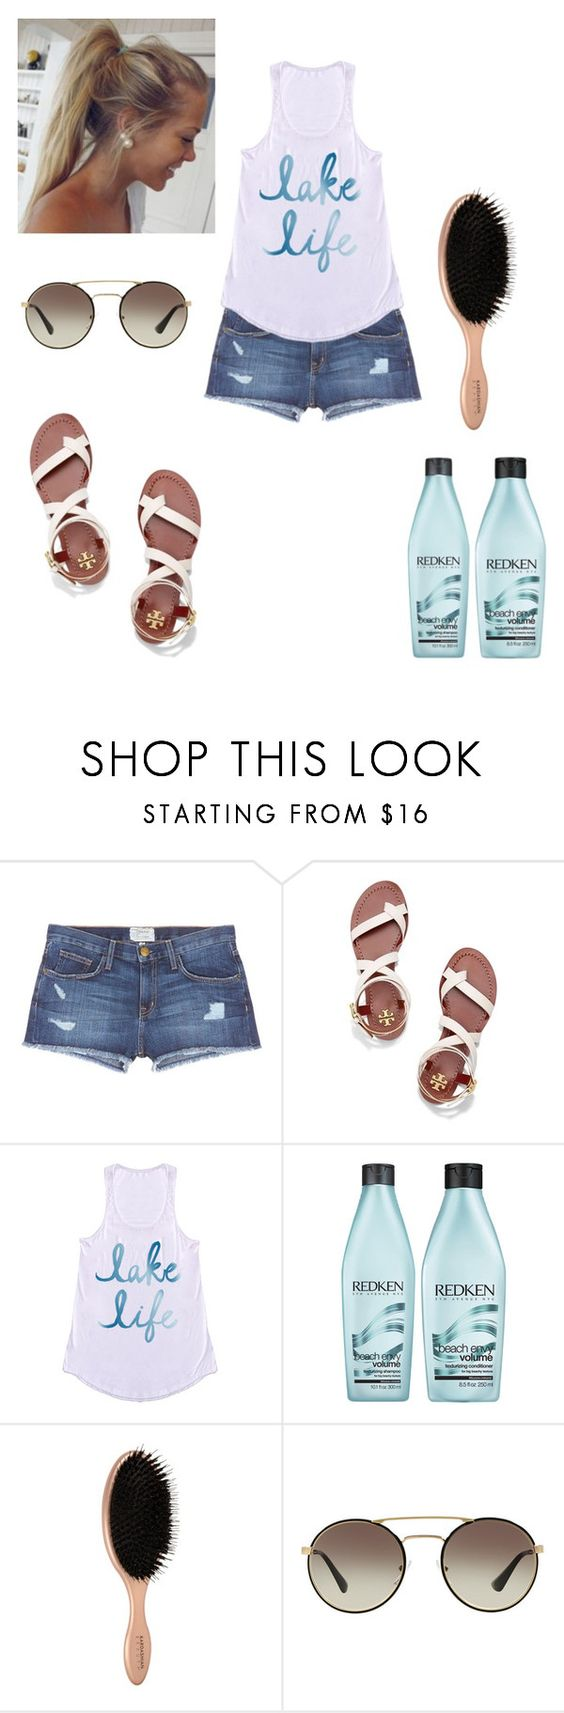 """Lake life"" by maggiewaggie ❤ liked on Polyvore featuring Current/Elliott, Tory Burch, Redken and Prada"